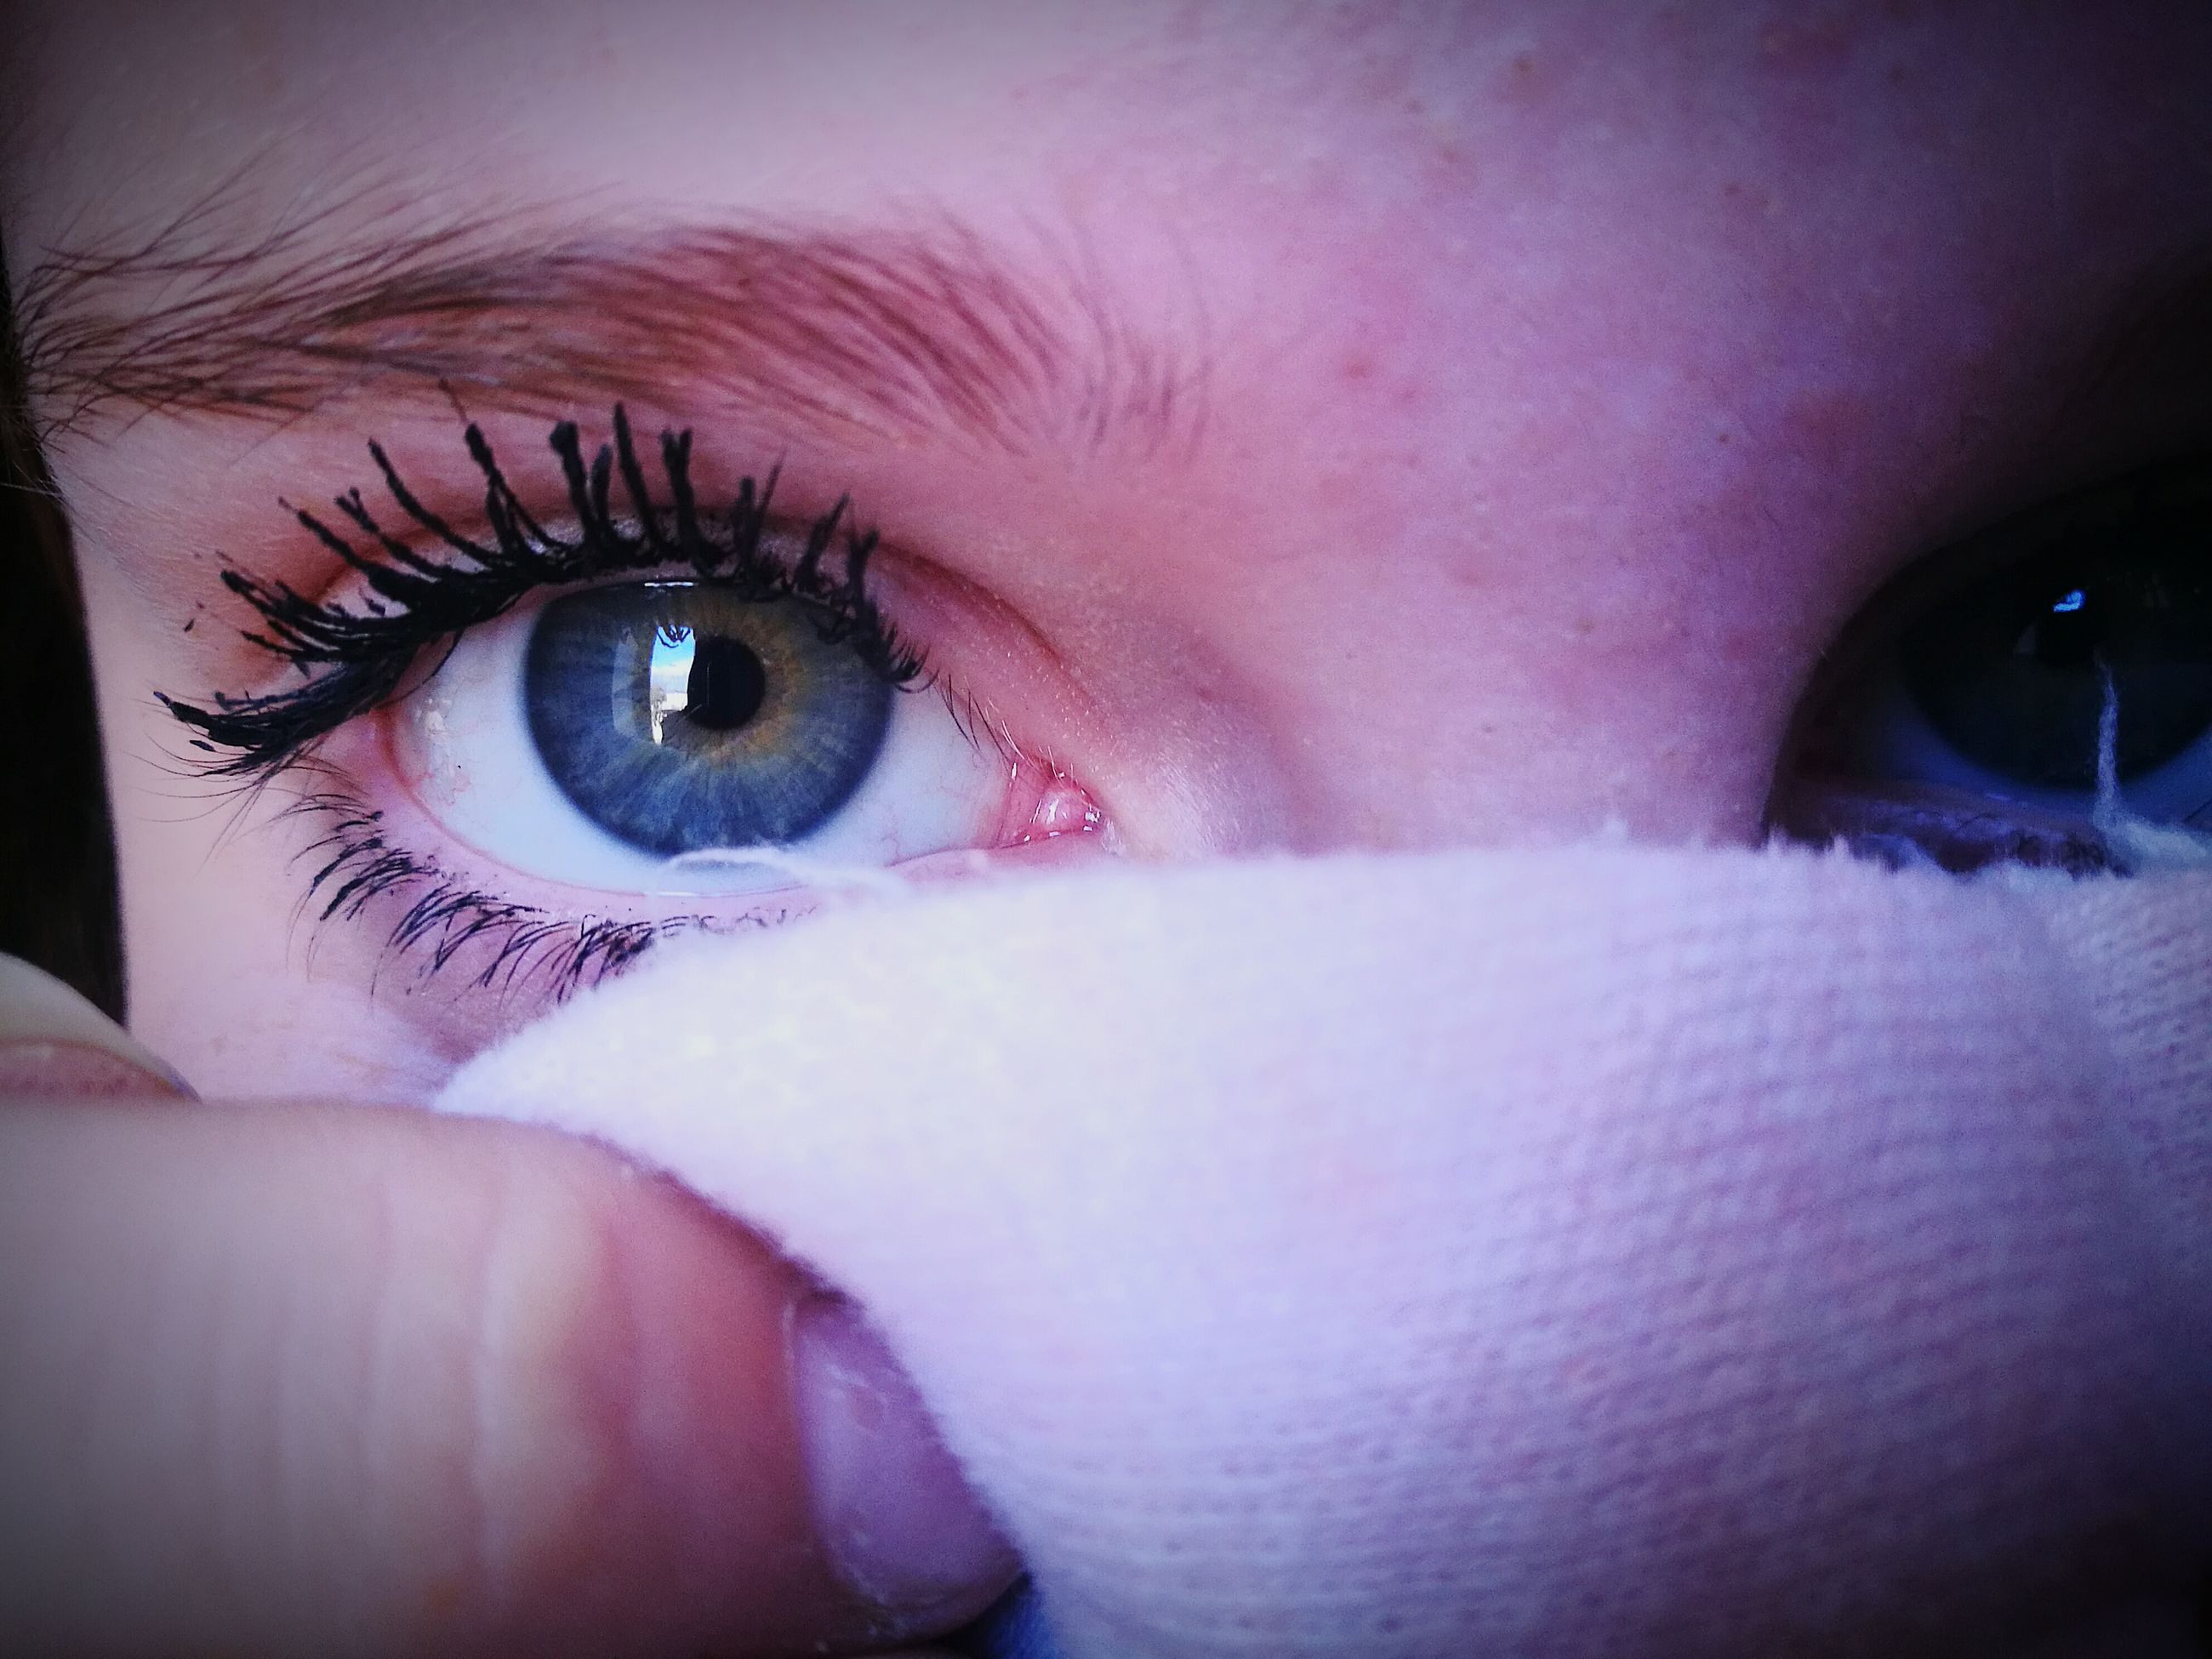 human eye, human body part, close-up, eyelash, real people, women, eyesight, eyeball, eyebrow, one person, human skin, young women, young adult, adult, people, outdoors, adults only, day